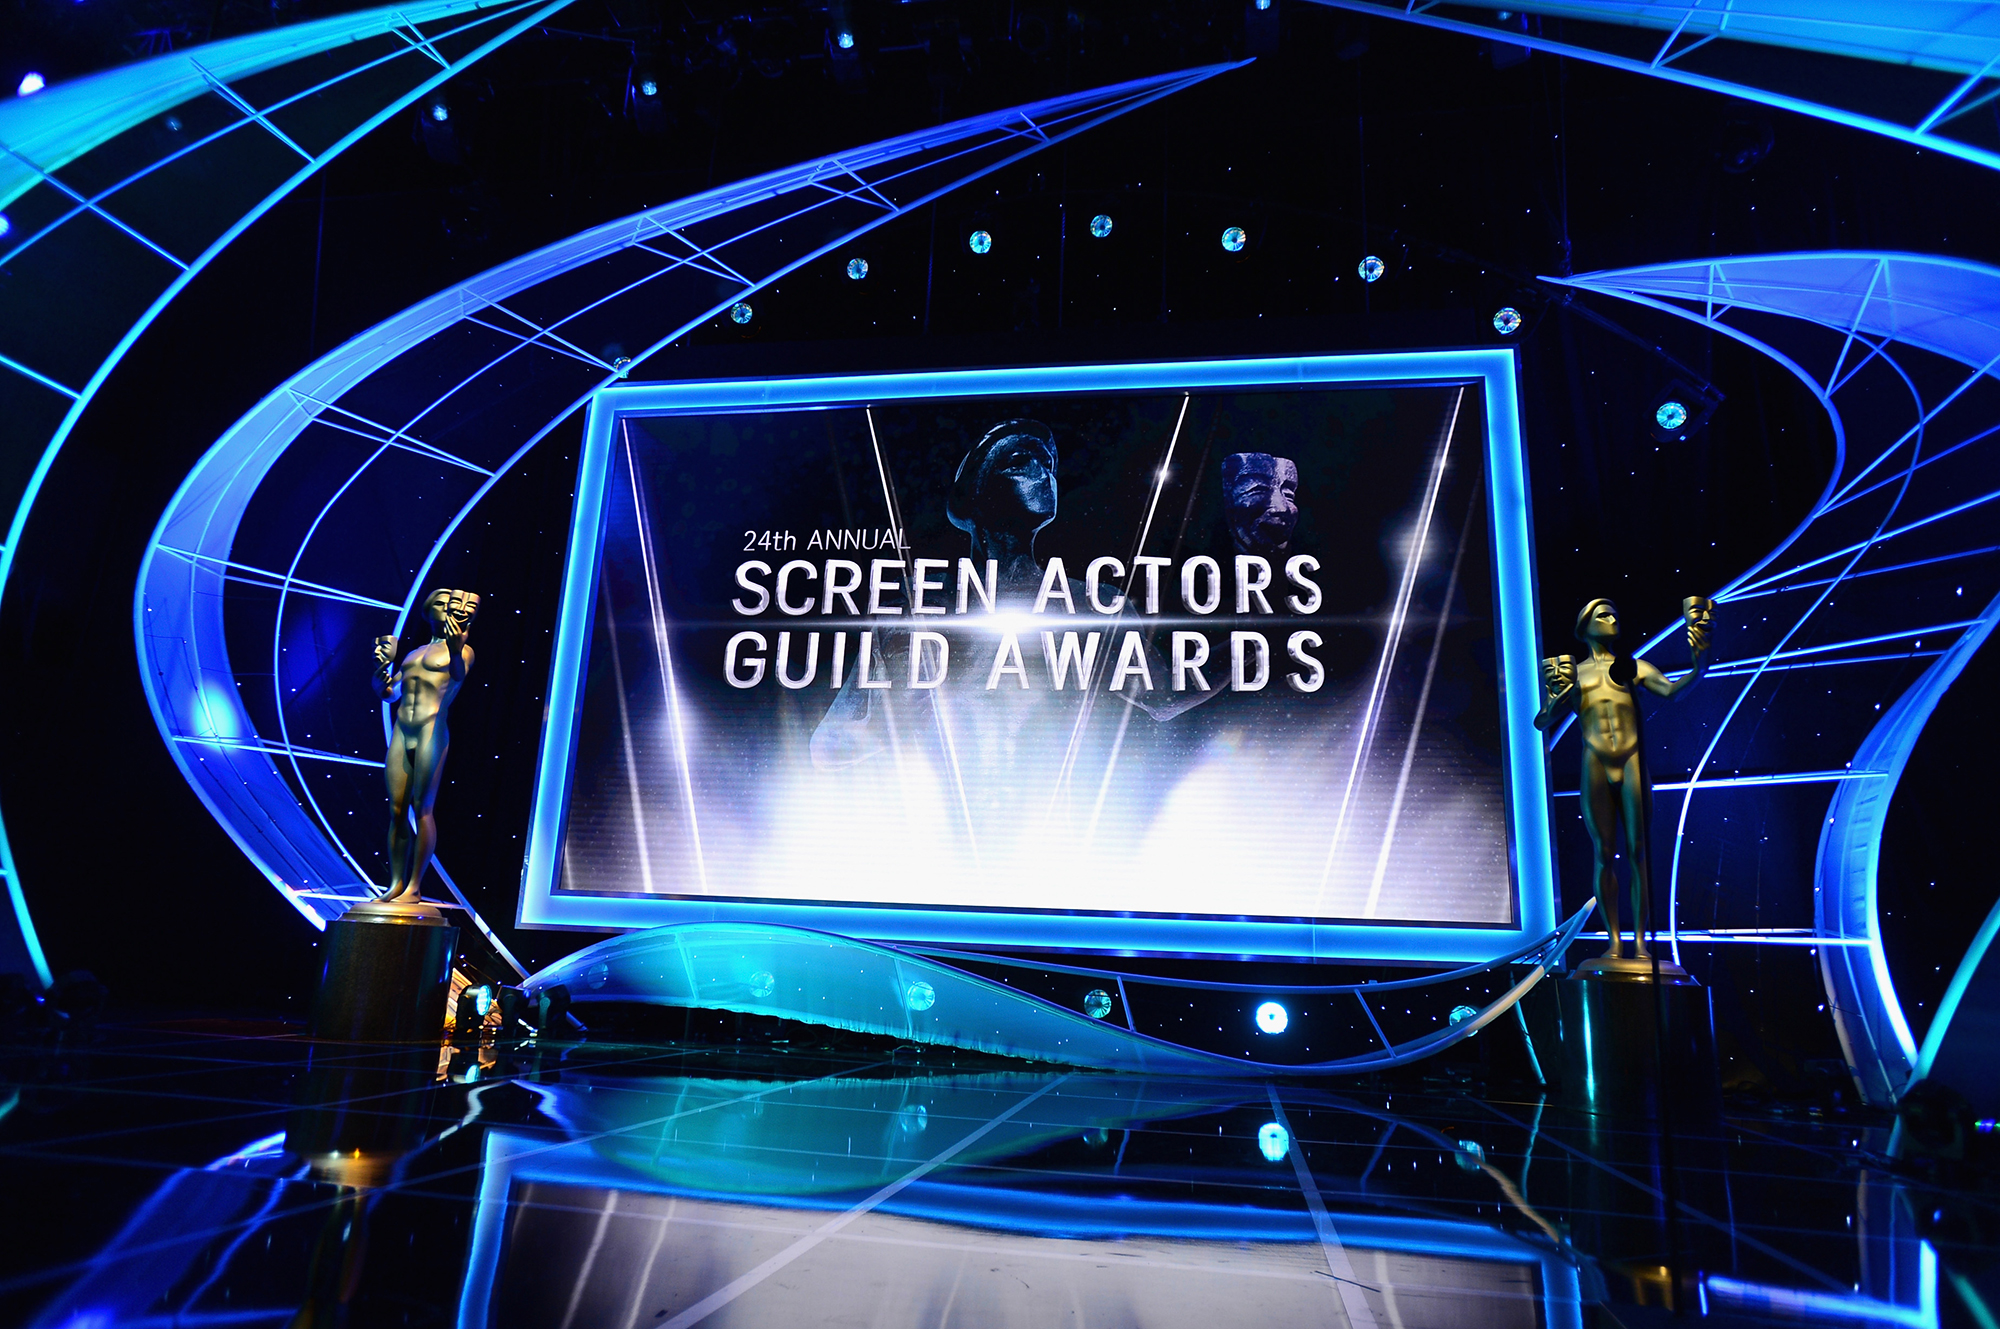 SAG-awards-how-to-watch - The 2019 SAG Awards will air on Sunday at 8 p.m.